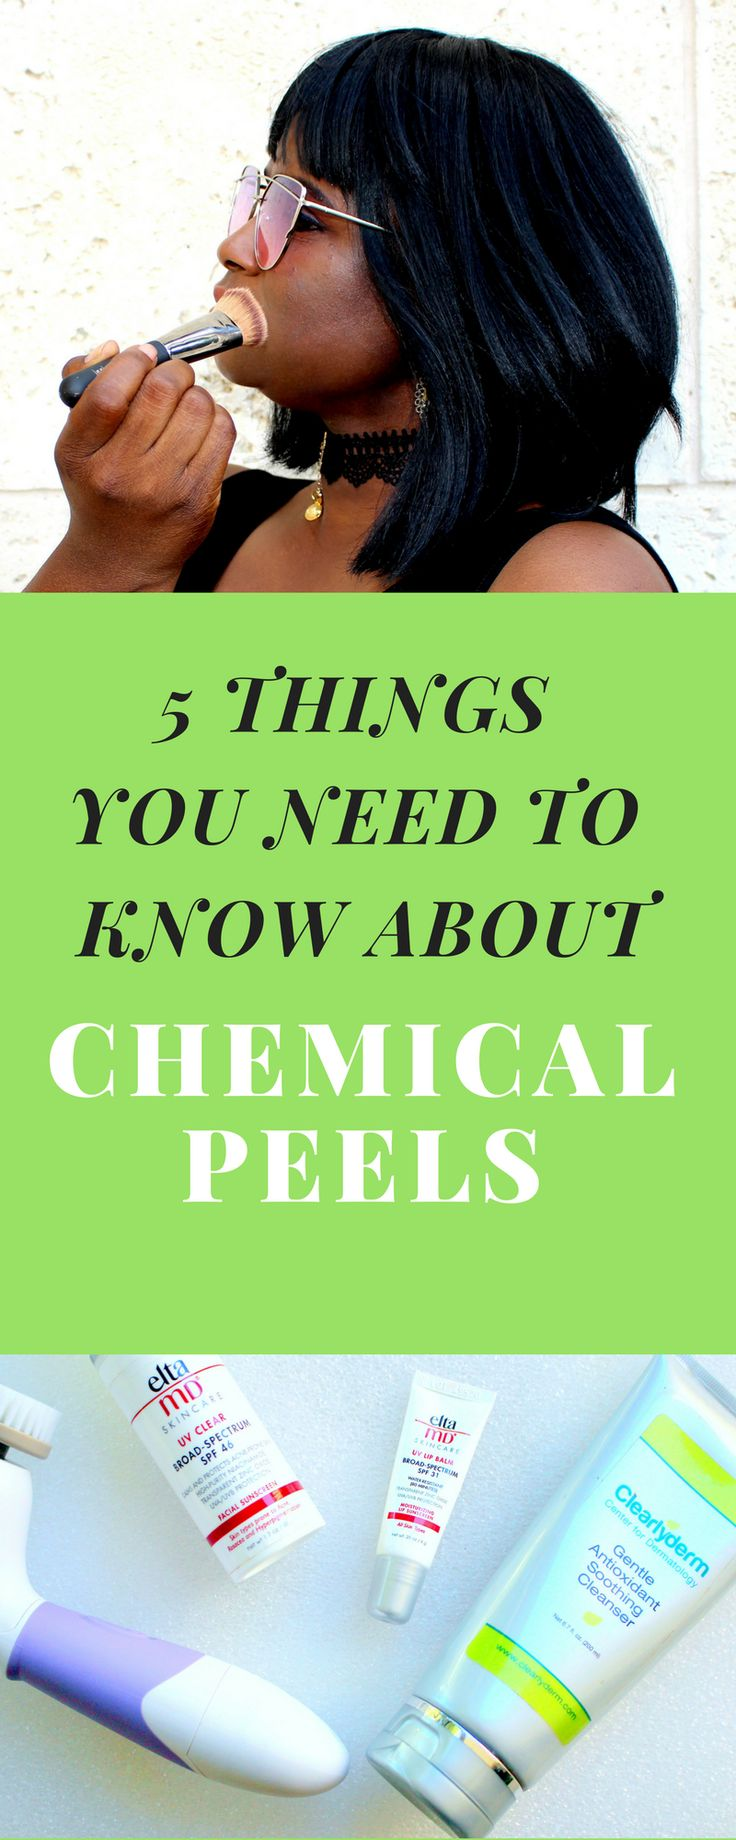 CHEMICAL PEELS - Although the chemical peels definitely WORK and you WILL be extremely pleased with the end result, there are 5 things that you should know before scheduling your first appointment! #beauty #beautyblogger #chemicalpeel #skincare #skin #beautyroutine